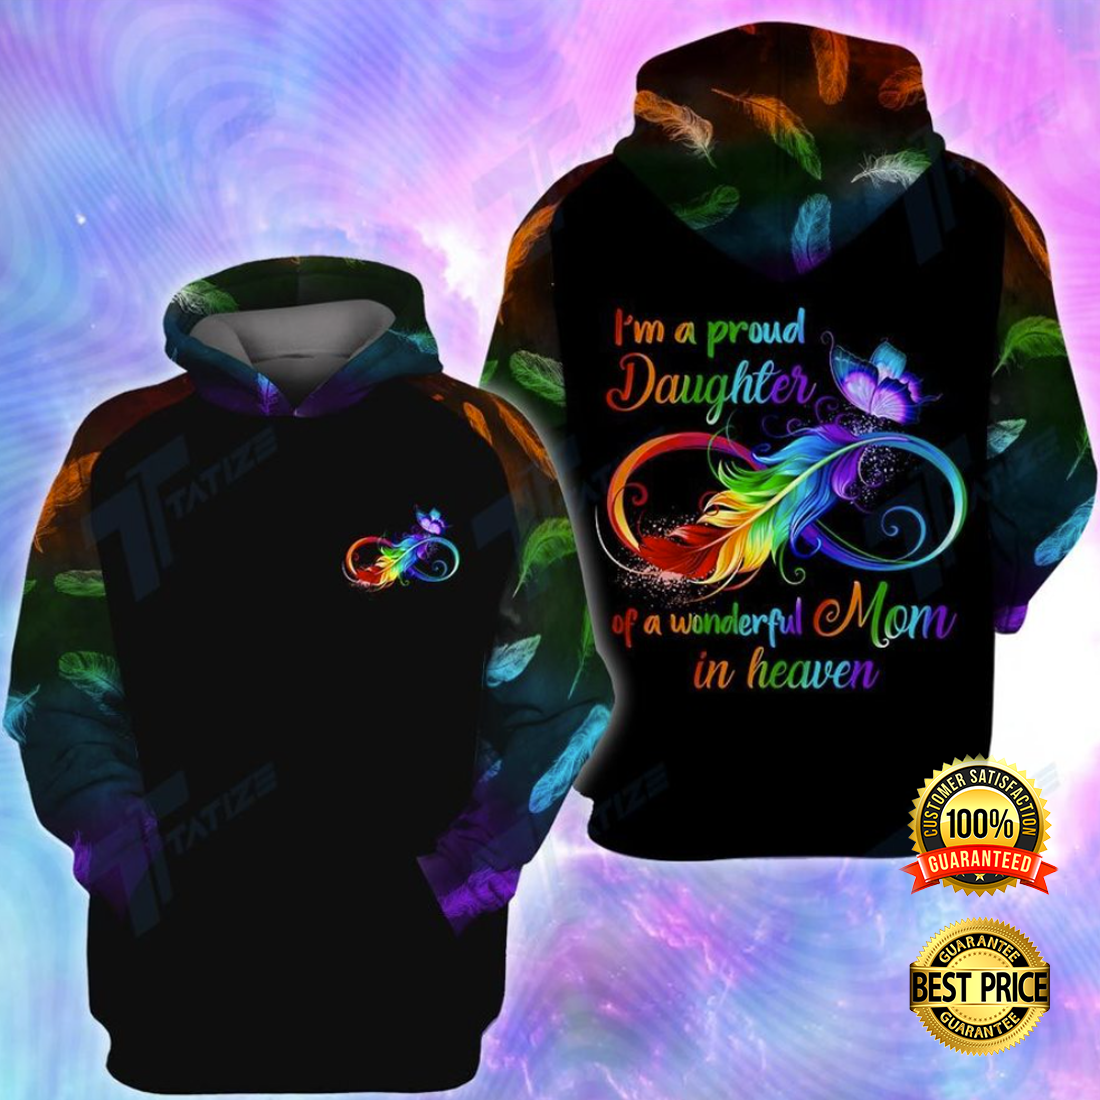 I'M A PROUD DAUGHTER OF A WONDERFUL MOM IN HEAVEN ALL OVER PRINTED 3D HOODIE 4